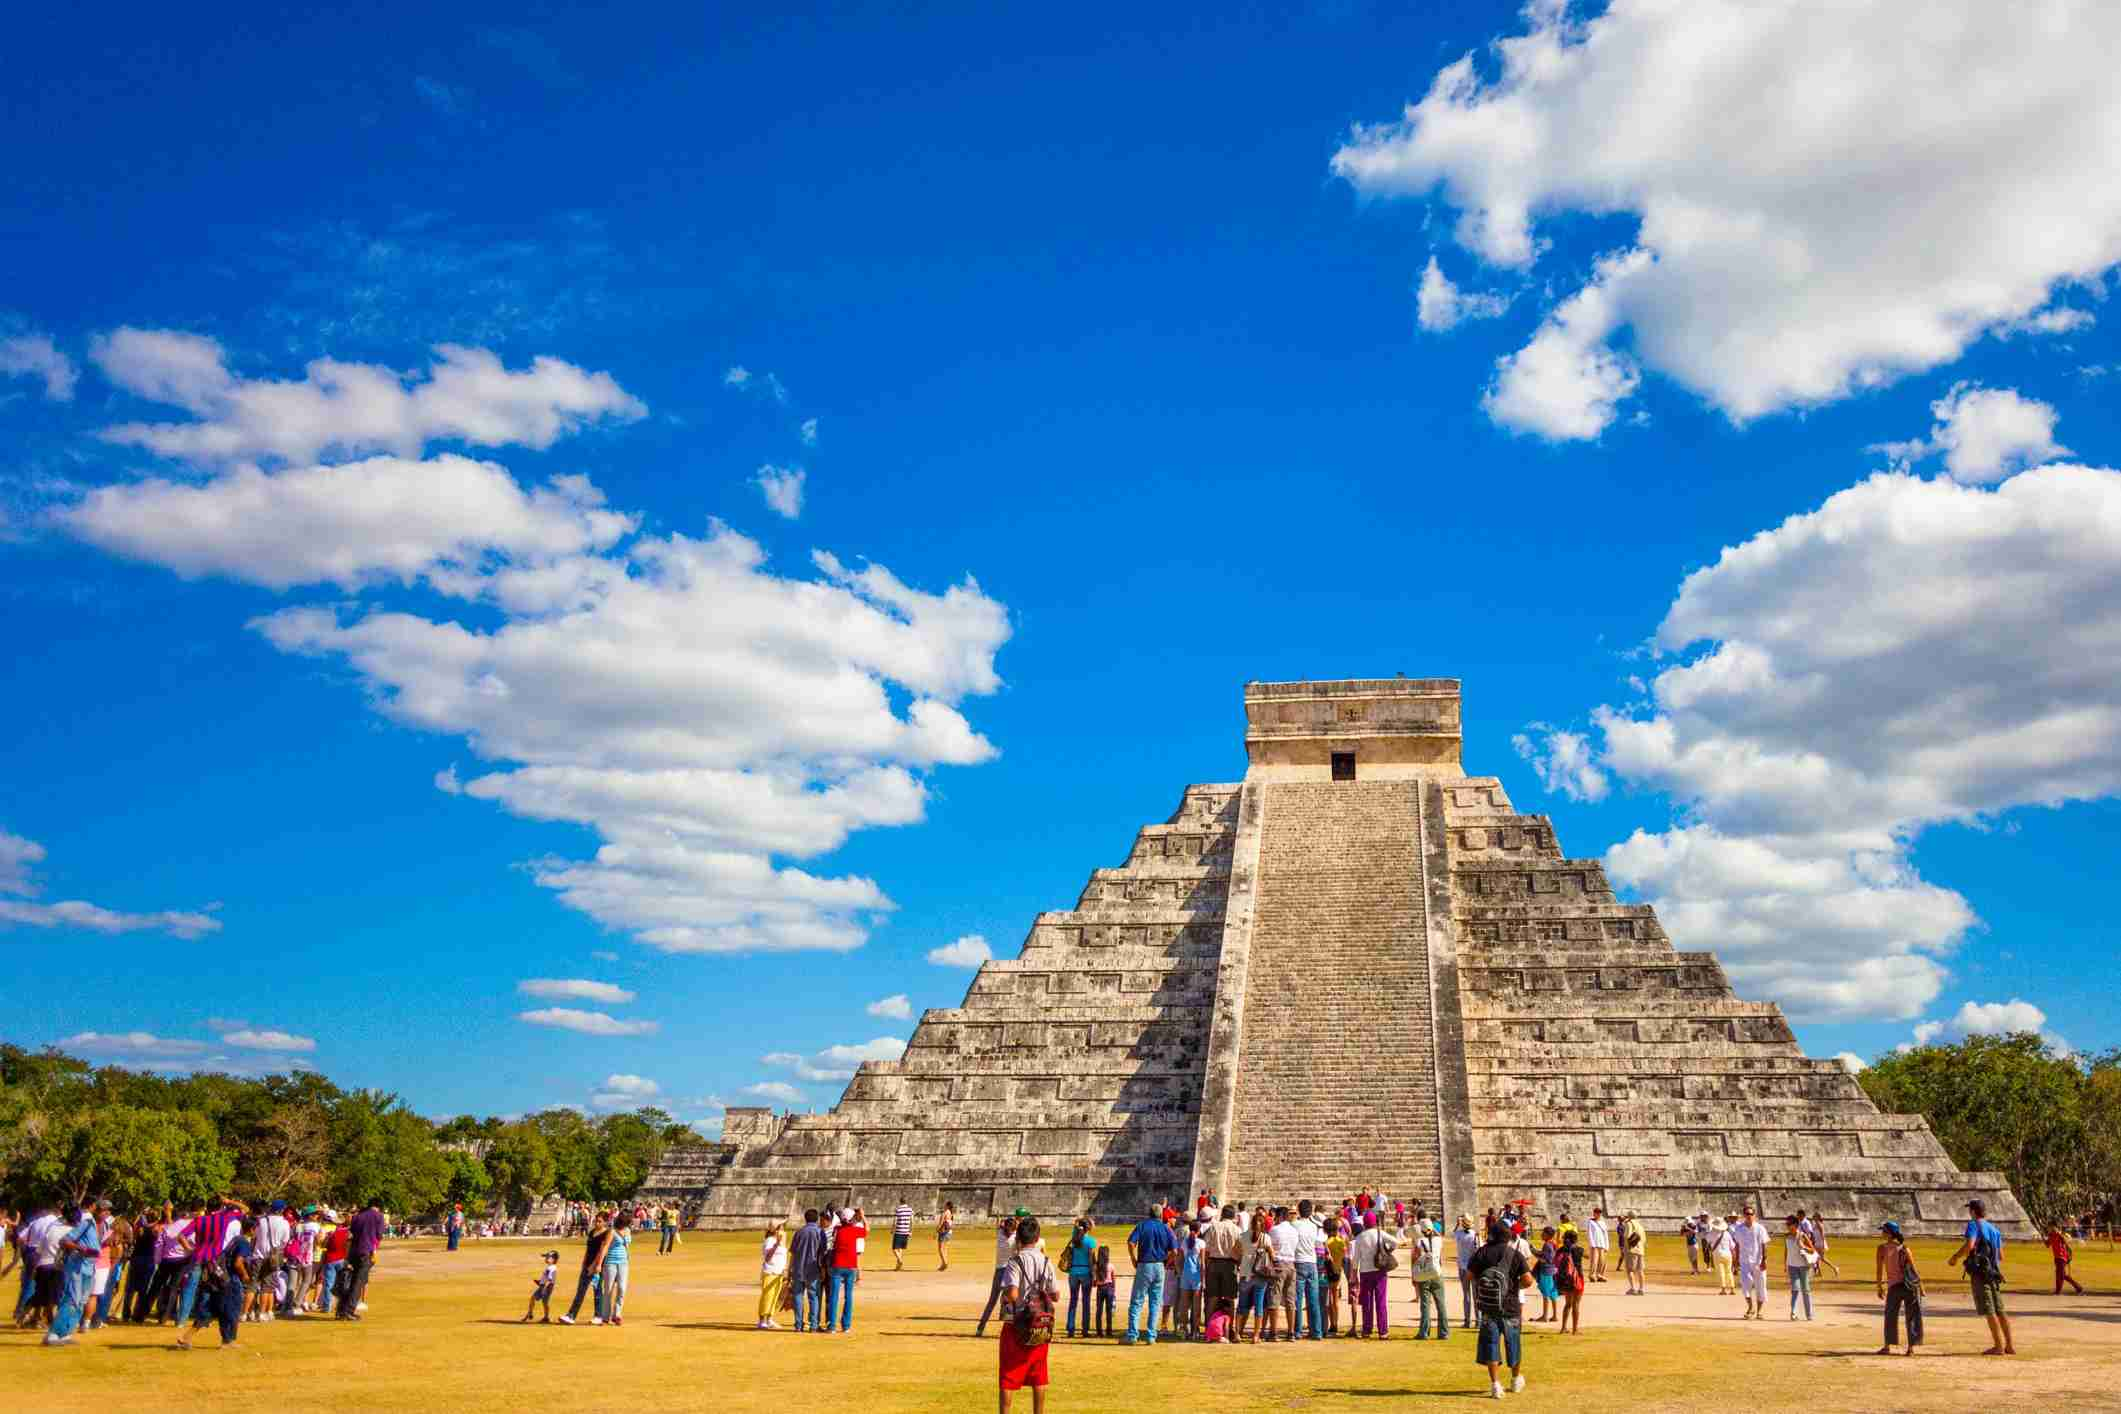 Image by Instants/Getty Images. Beautiful architecture of Kukulkan pyramid in Chichen Itza, this pre-Columbian city situated in Mexico's Yucatan state.